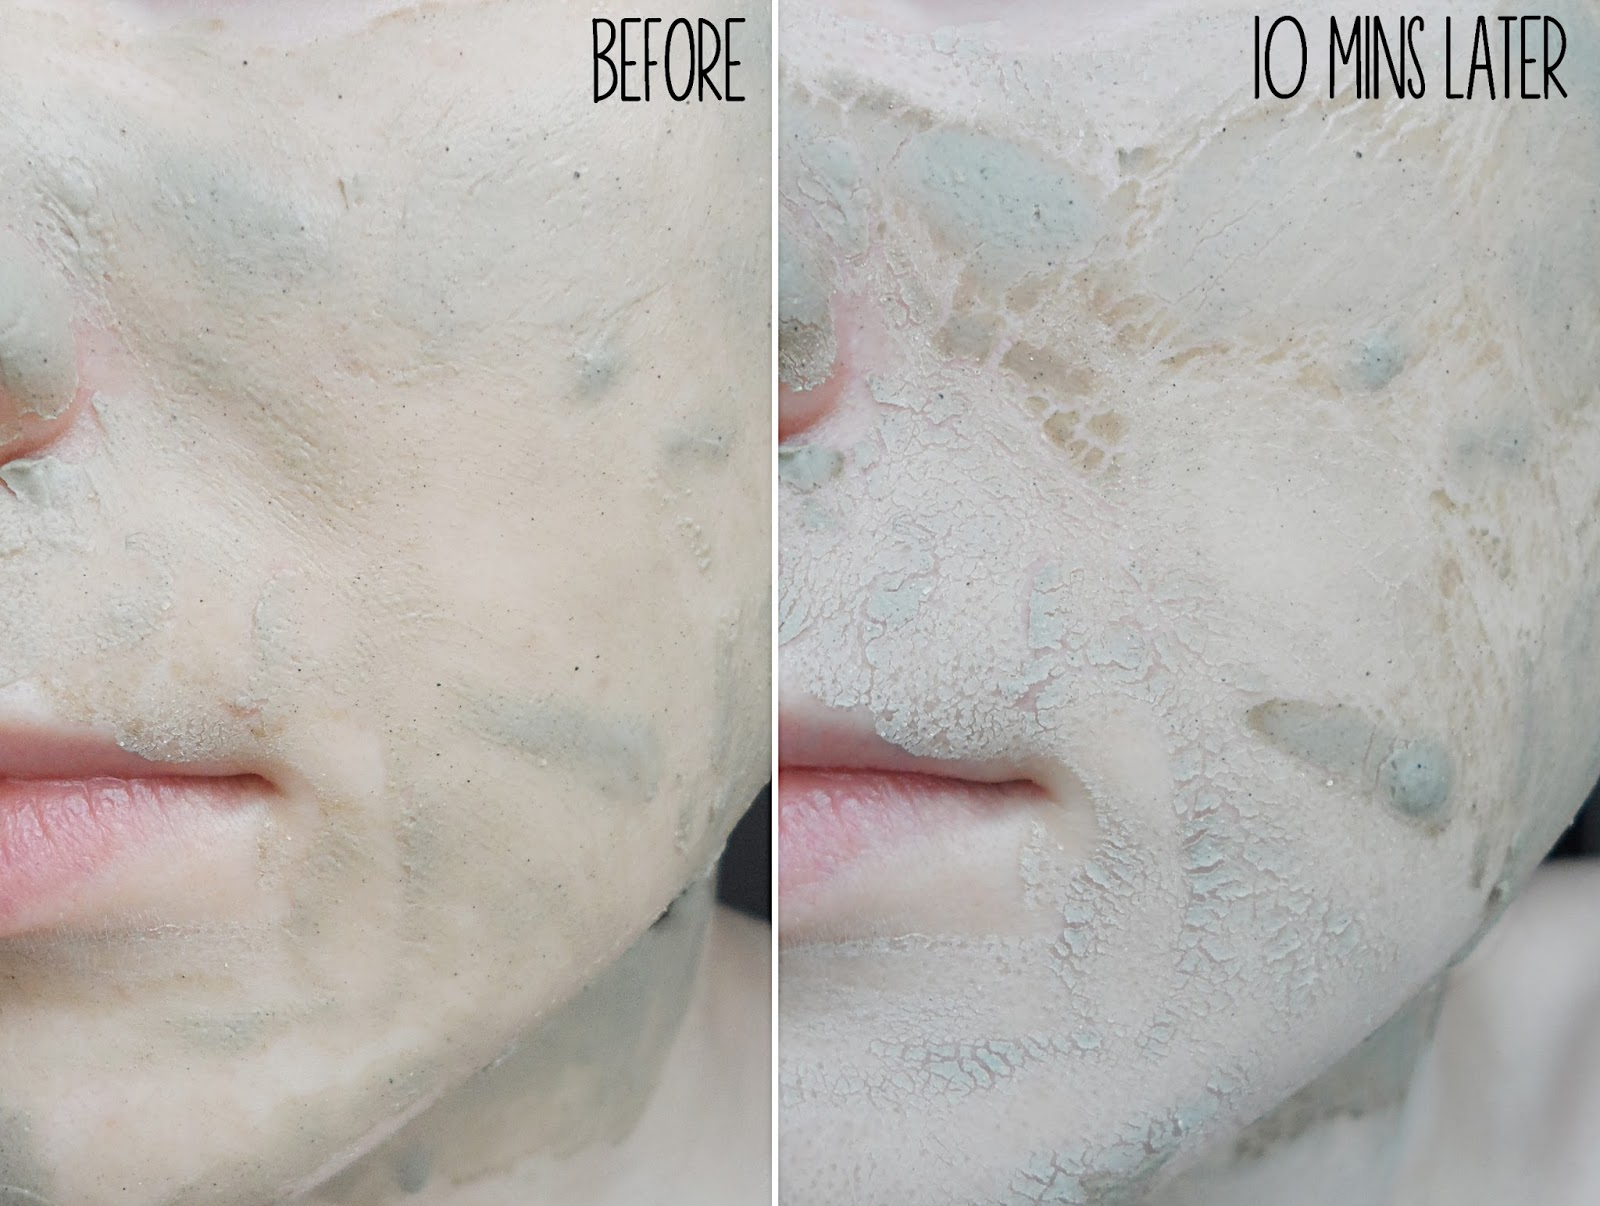 french green clay mask bentonite clay mask fuller`s earth mask natural maple holistics mask review liz breygel